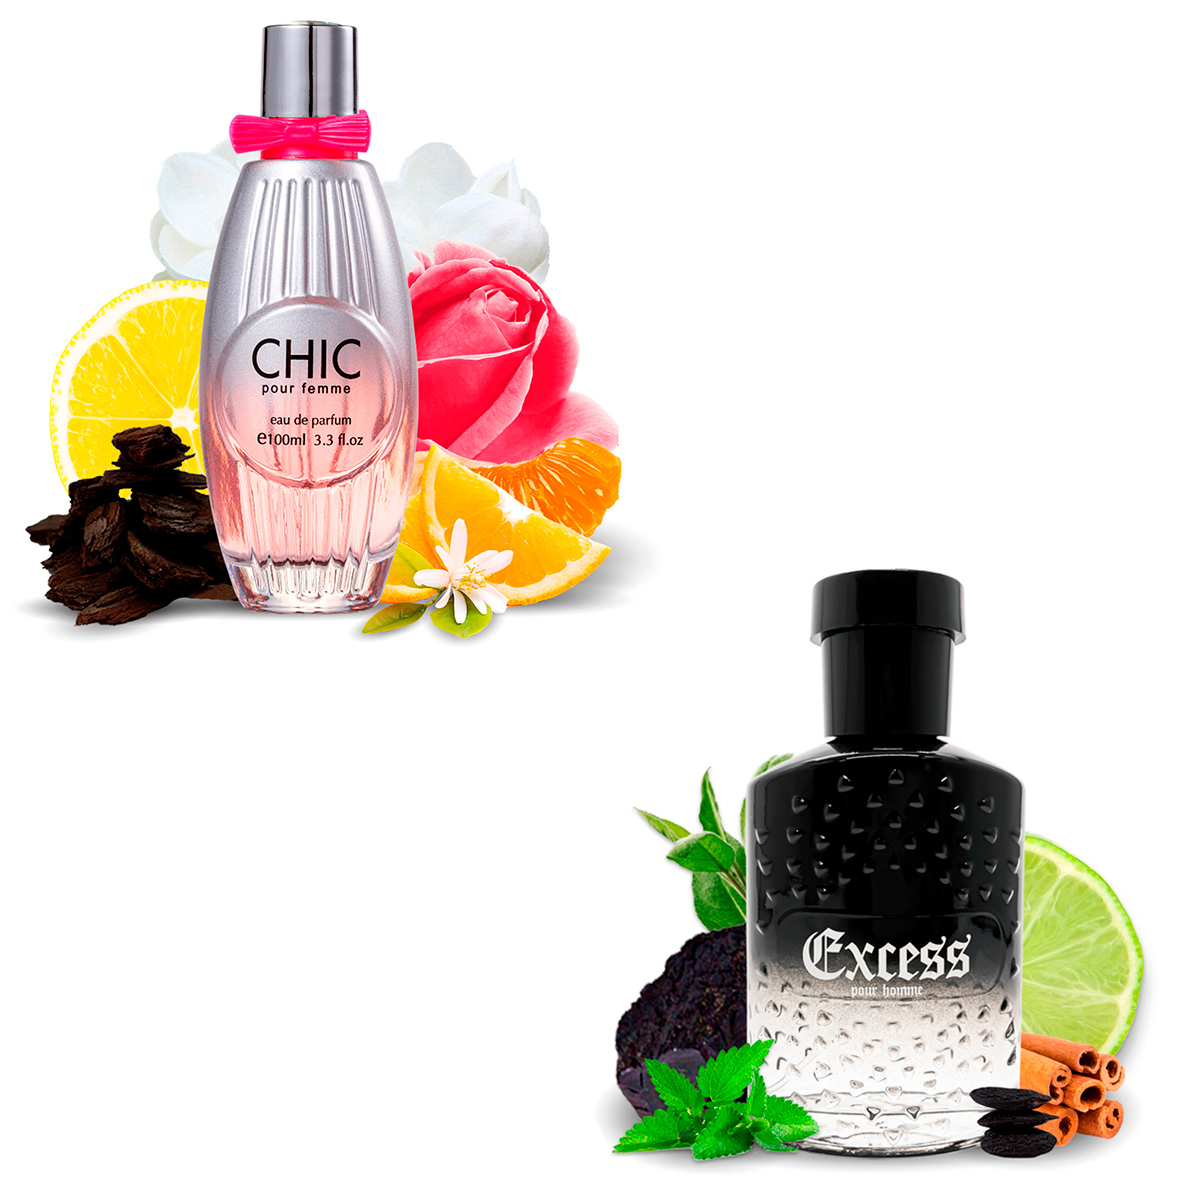 Kit 2 Perfumes Importados Chic e Excess I Scents